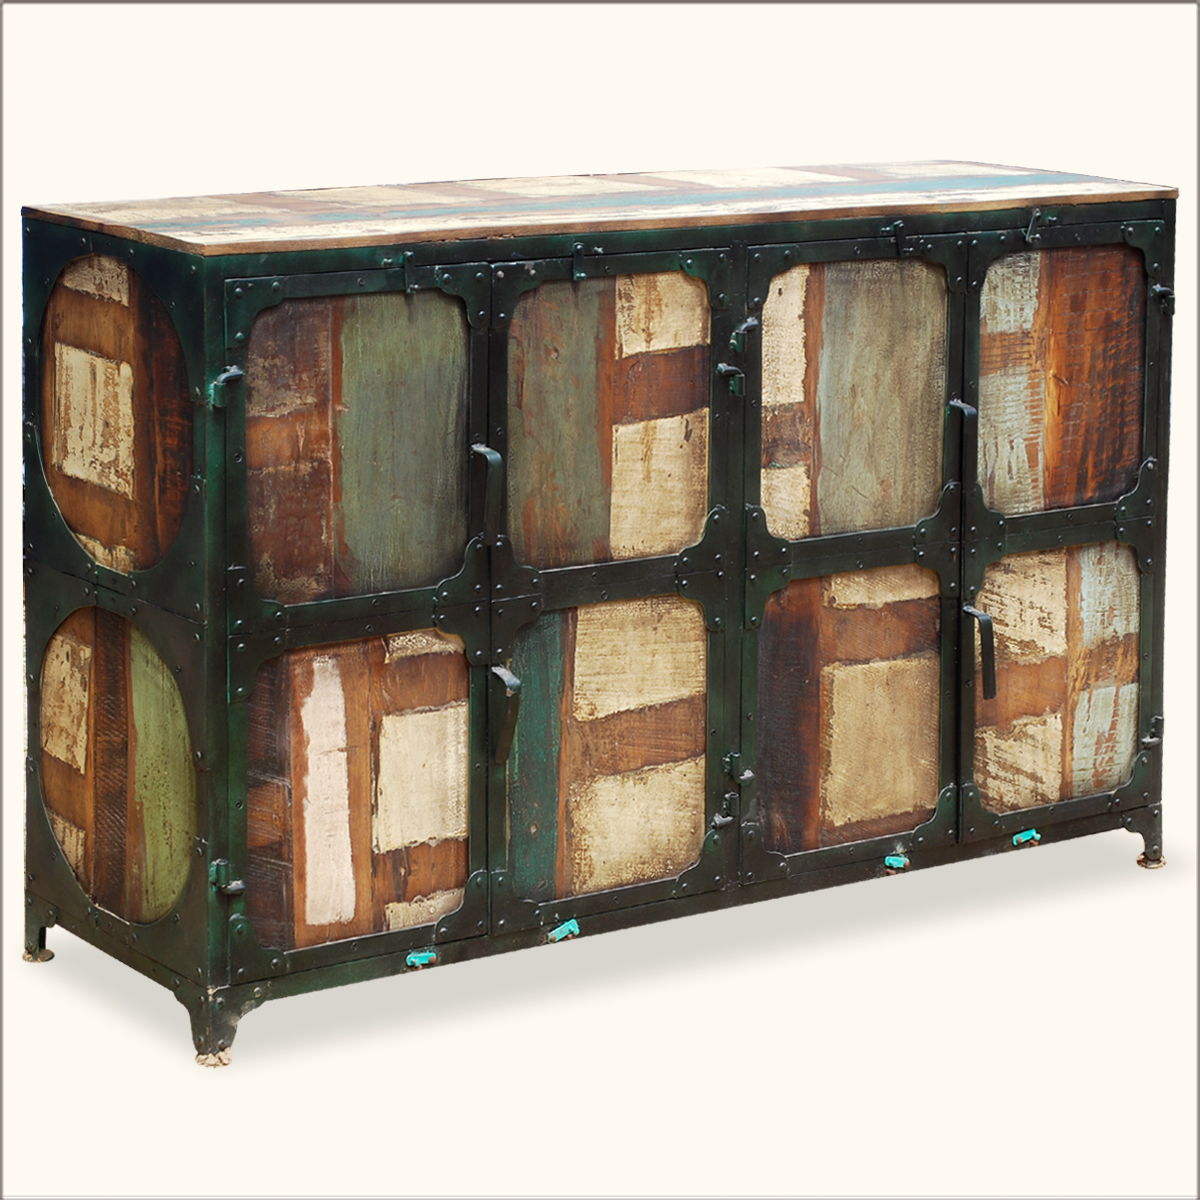 Wood Buffets Credenzas Sideboards: Industrial Iron Rustic Old Reclaimed Wood Sideboard Buffet